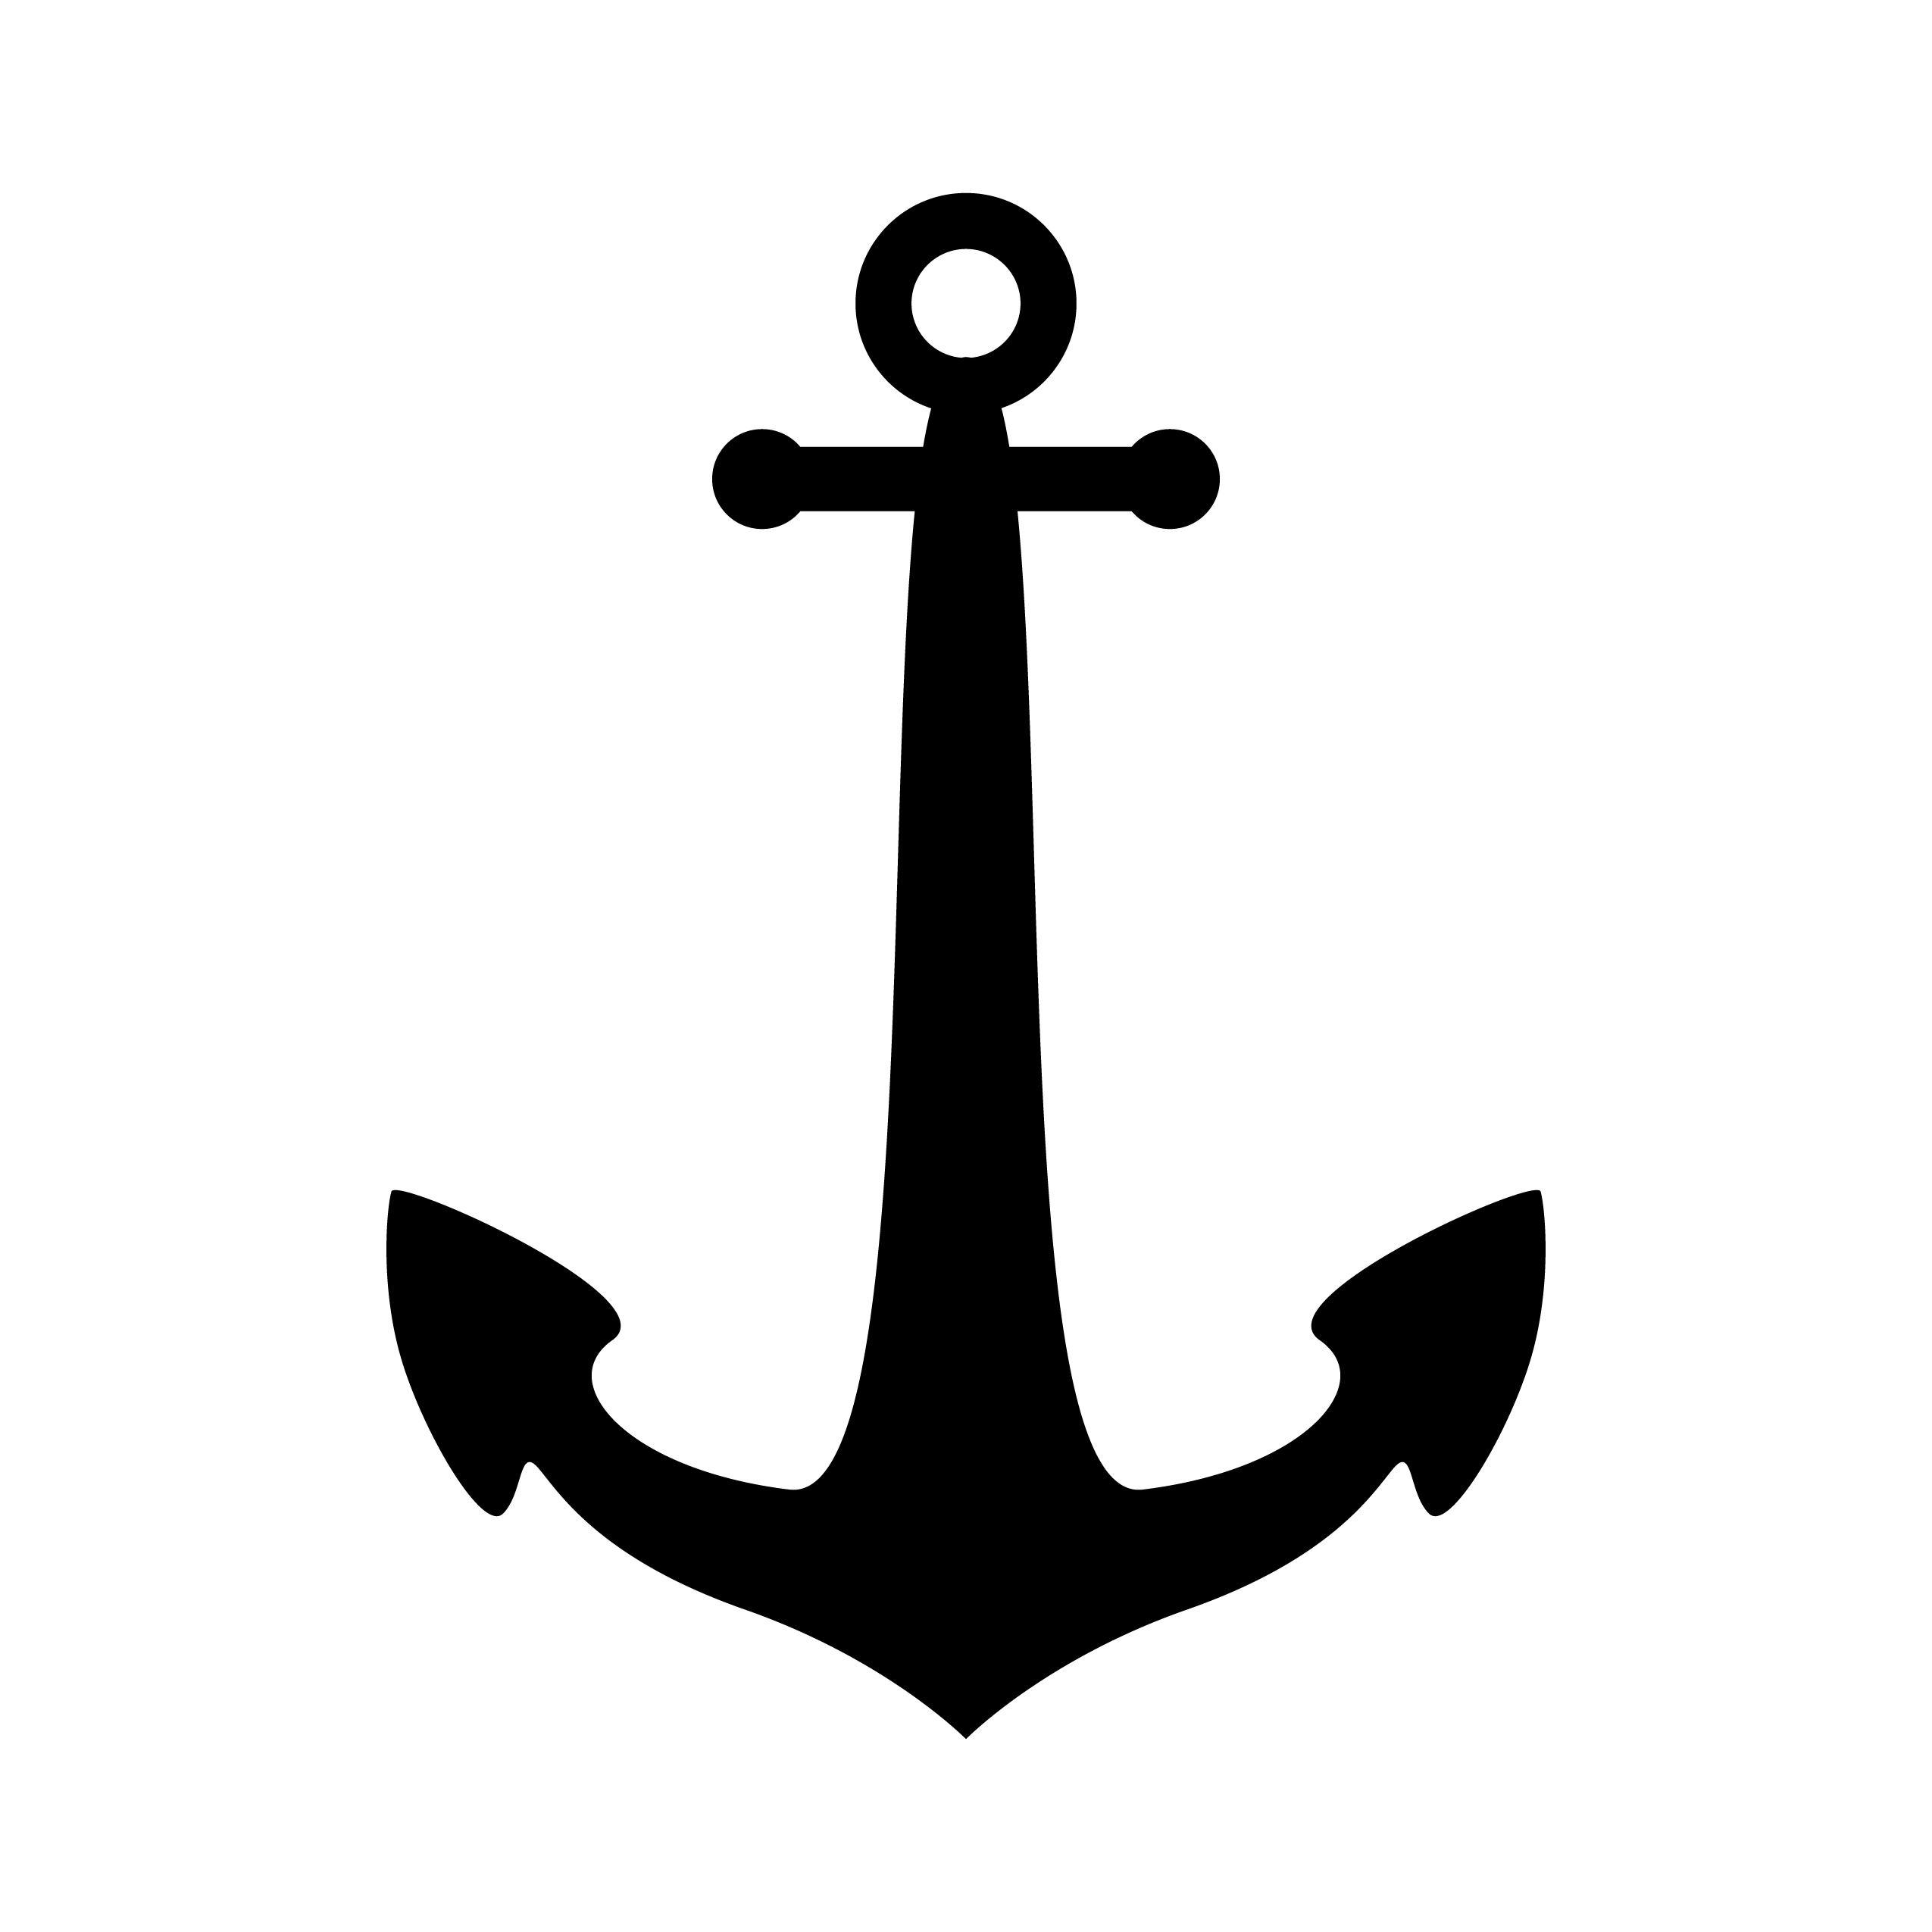 graphic about Printable Anchor Template titled Anchor Stencil No cost Printable Stencil Templates